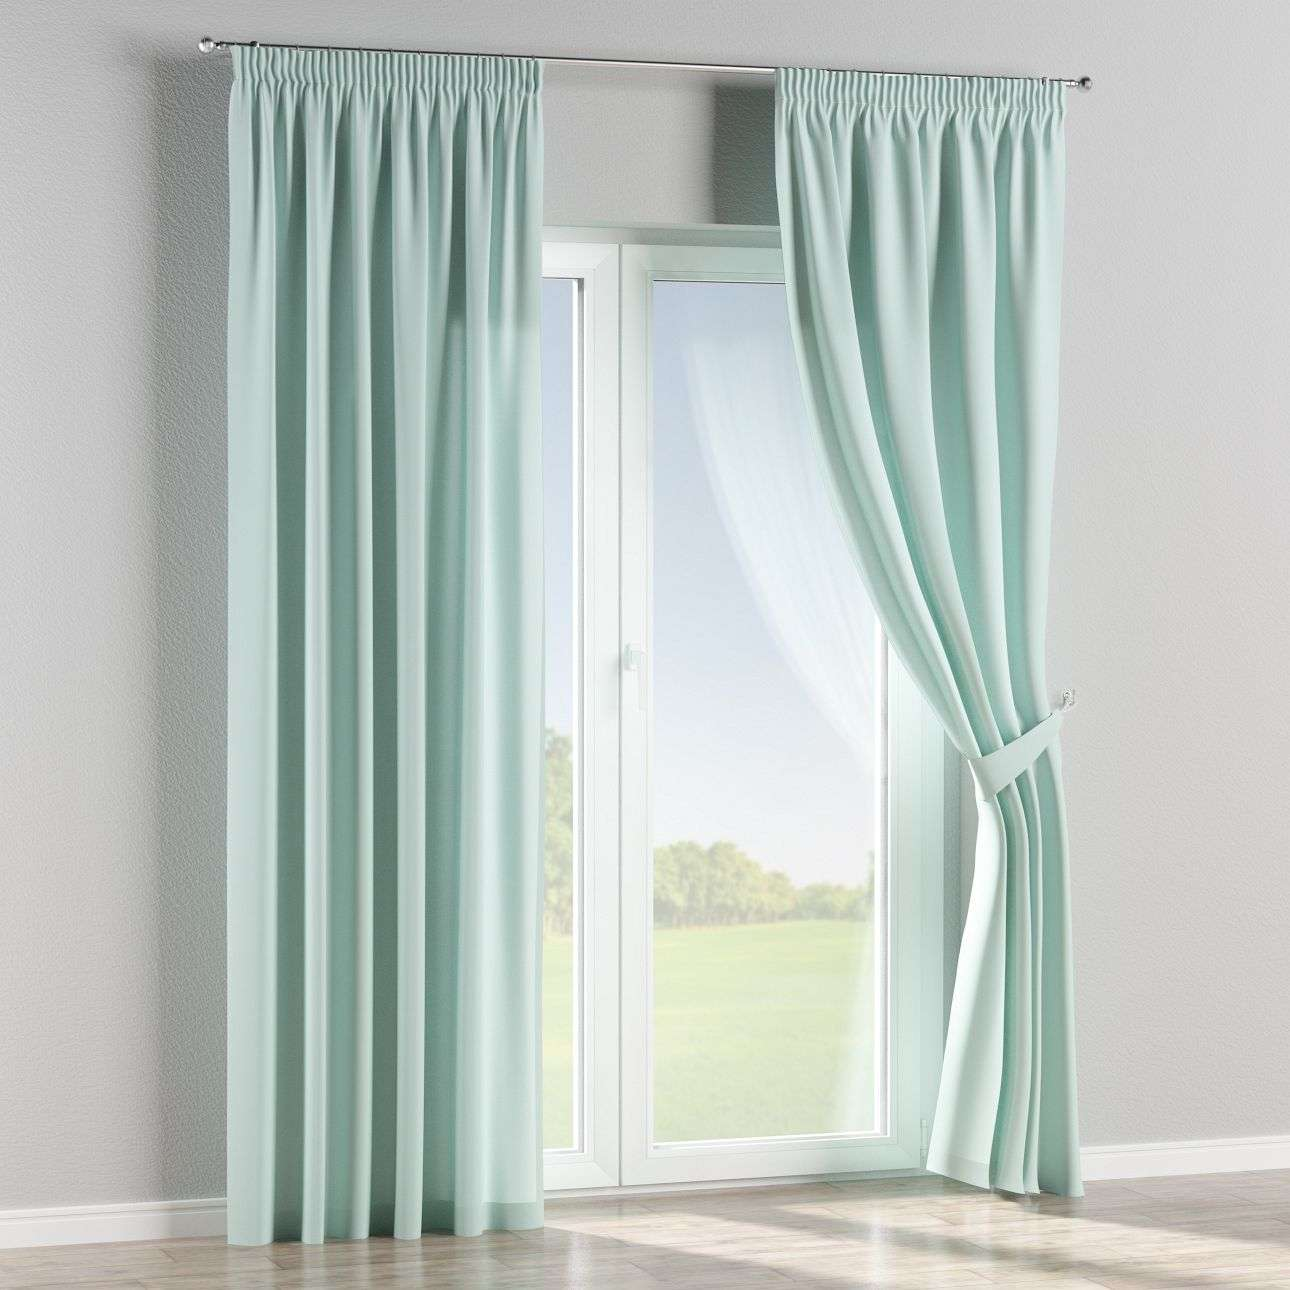 Pencil pleat curtains 130 × 260 cm (51 × 102 inch) in collection Panama Cotton, fabric: 702-10